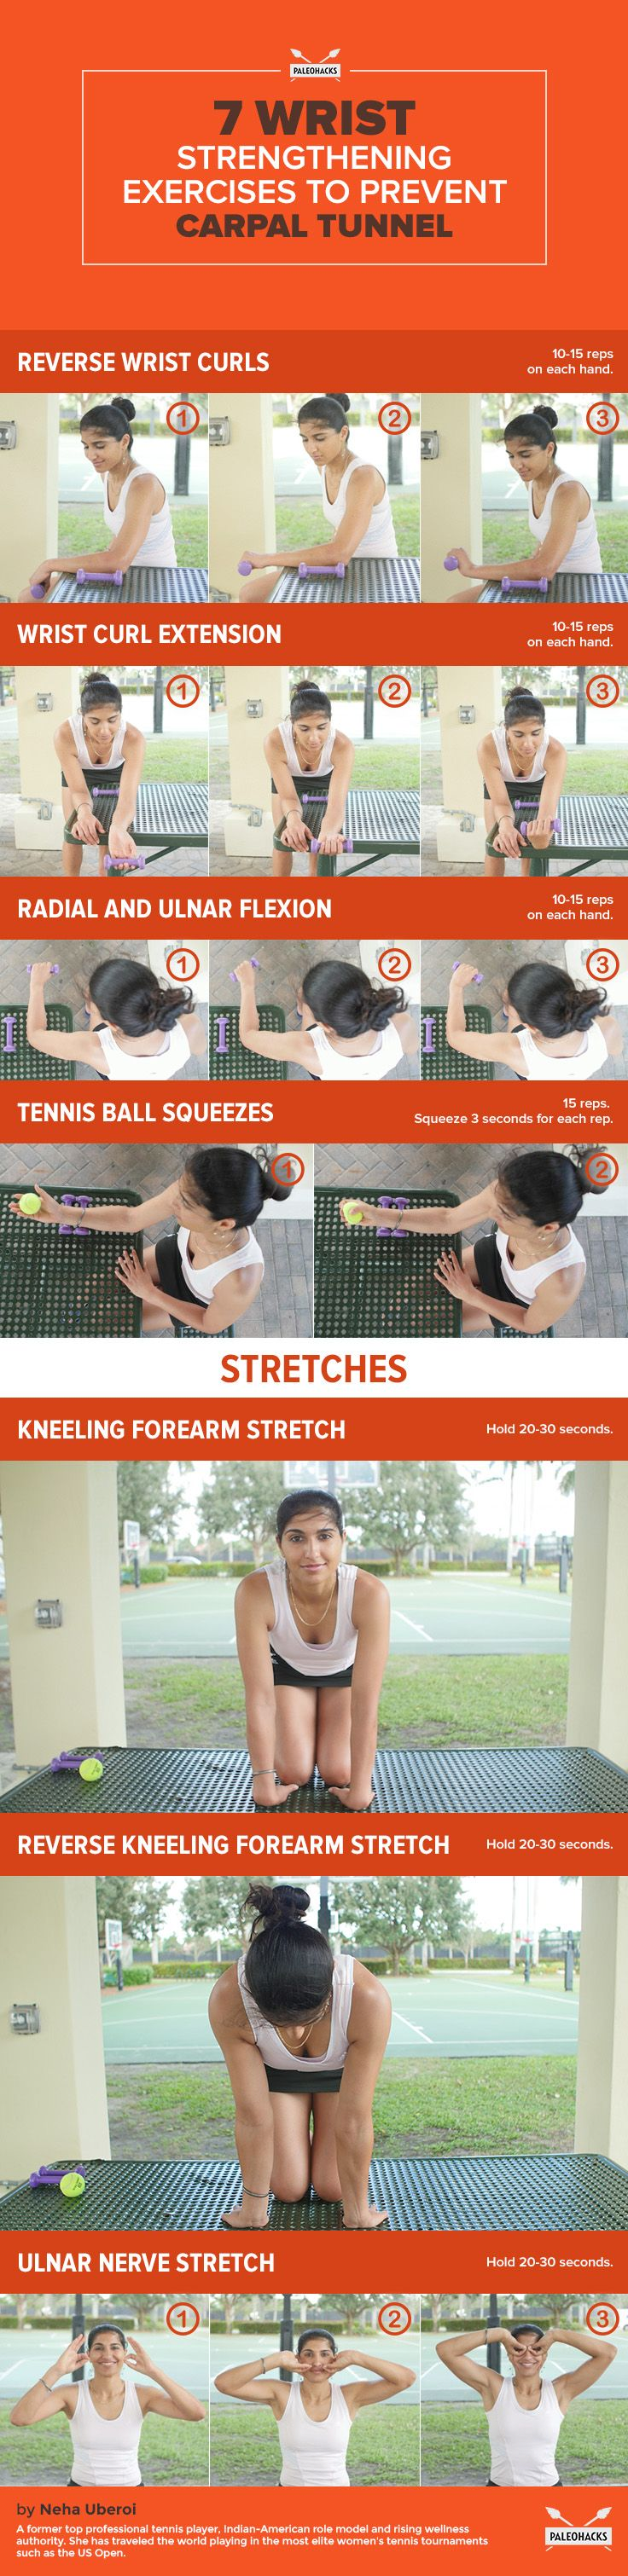 Build super human grip strength, prevent injury and improve mobility. For the…